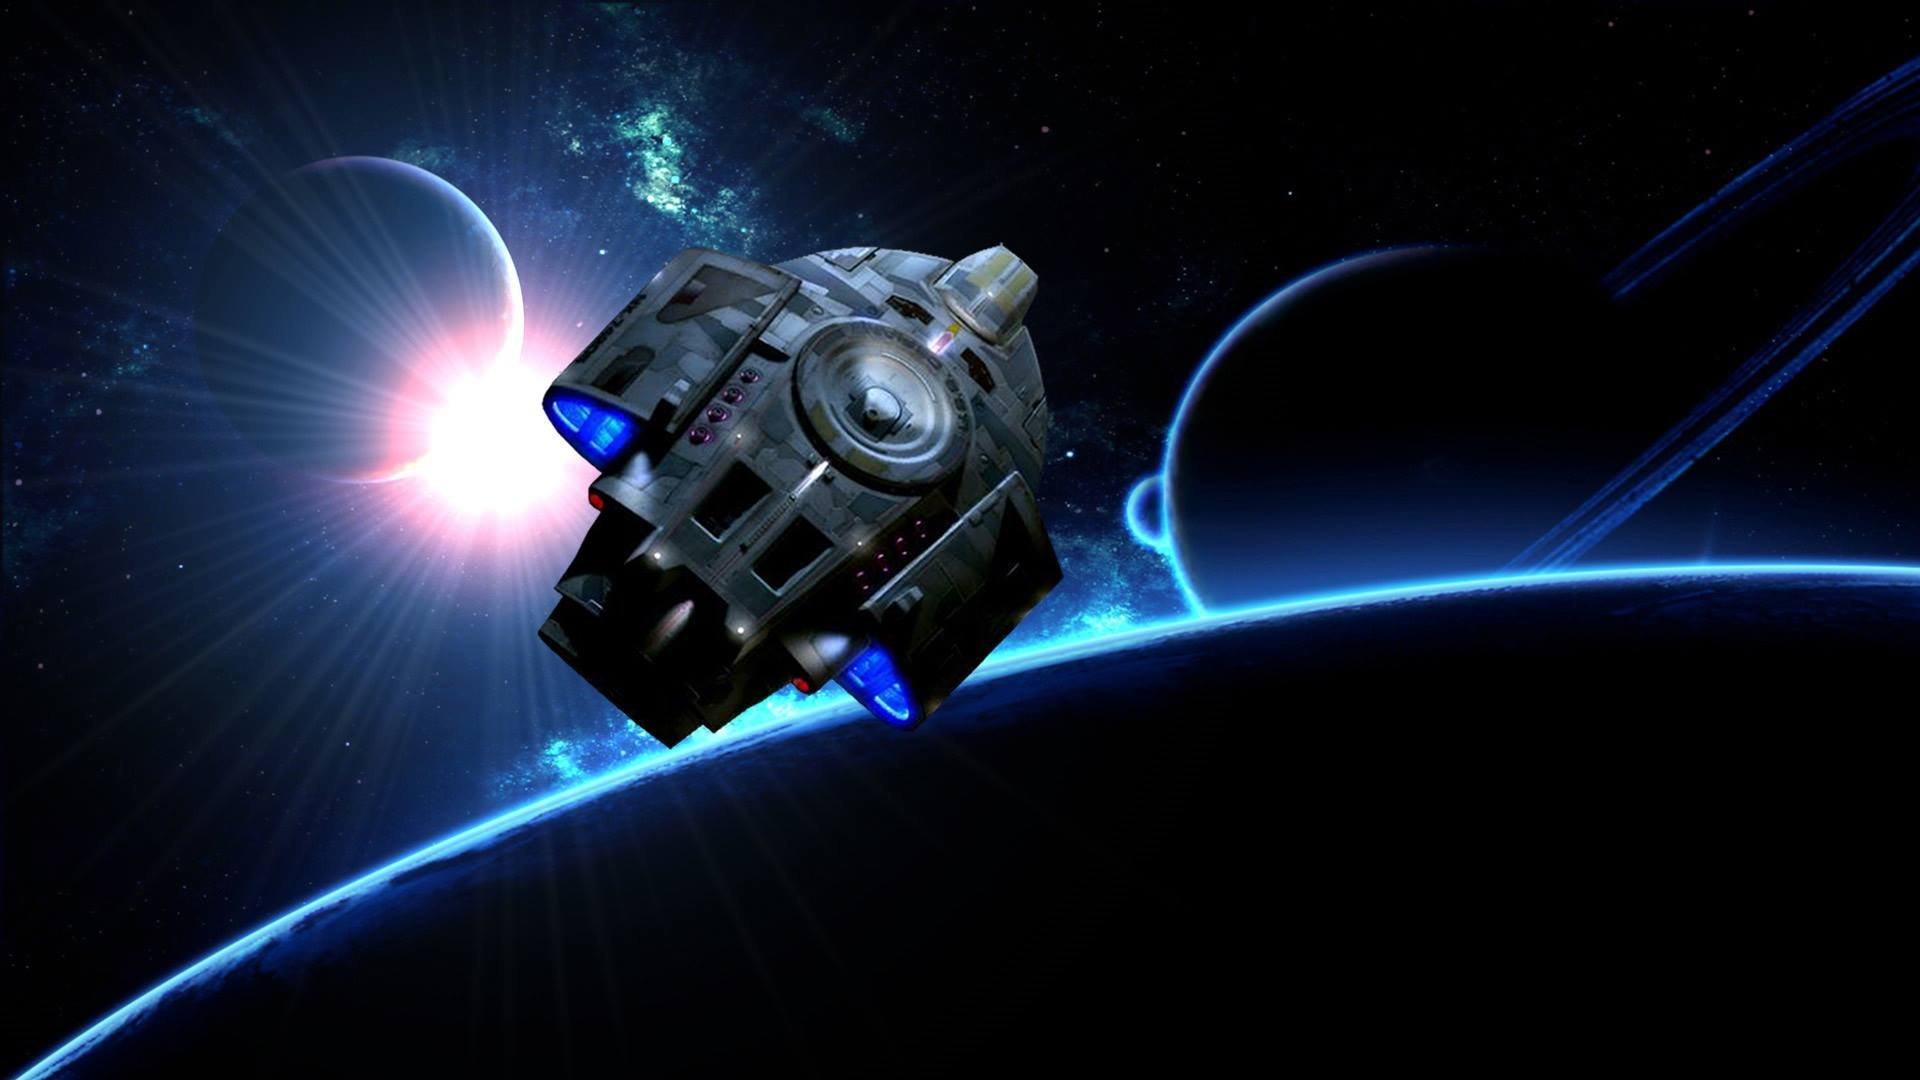 DEEP SPACE NINE Star Trek futuristic television sci fi spaceship 17 1920x1080